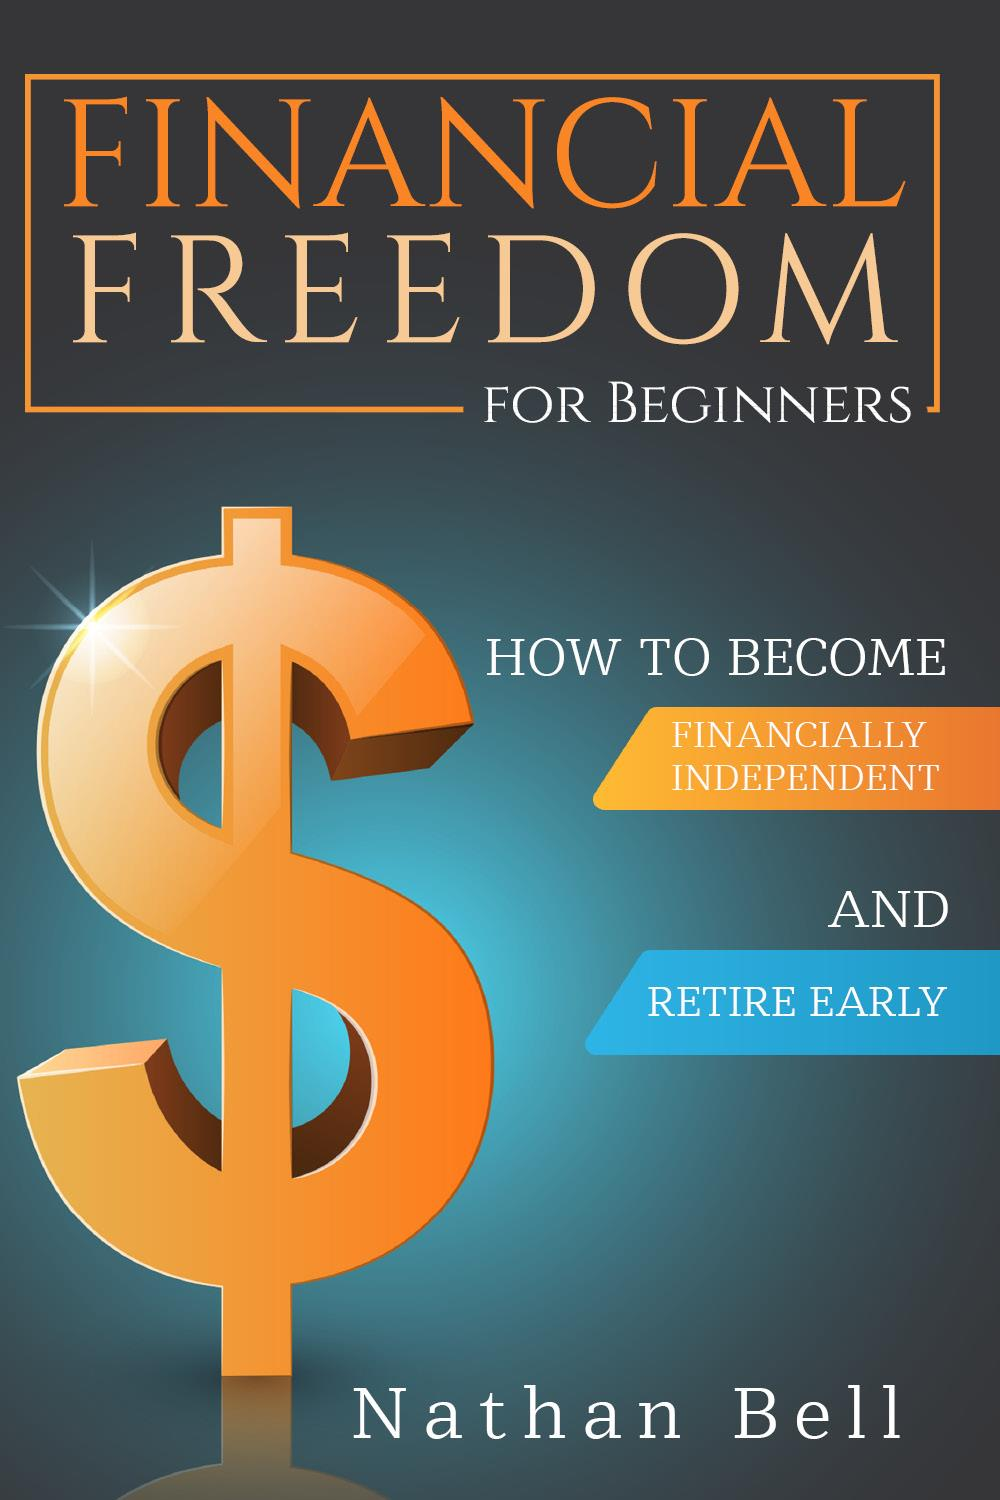 Financial Freedom for Beginners. How To Become Financially Independent and Retire Early